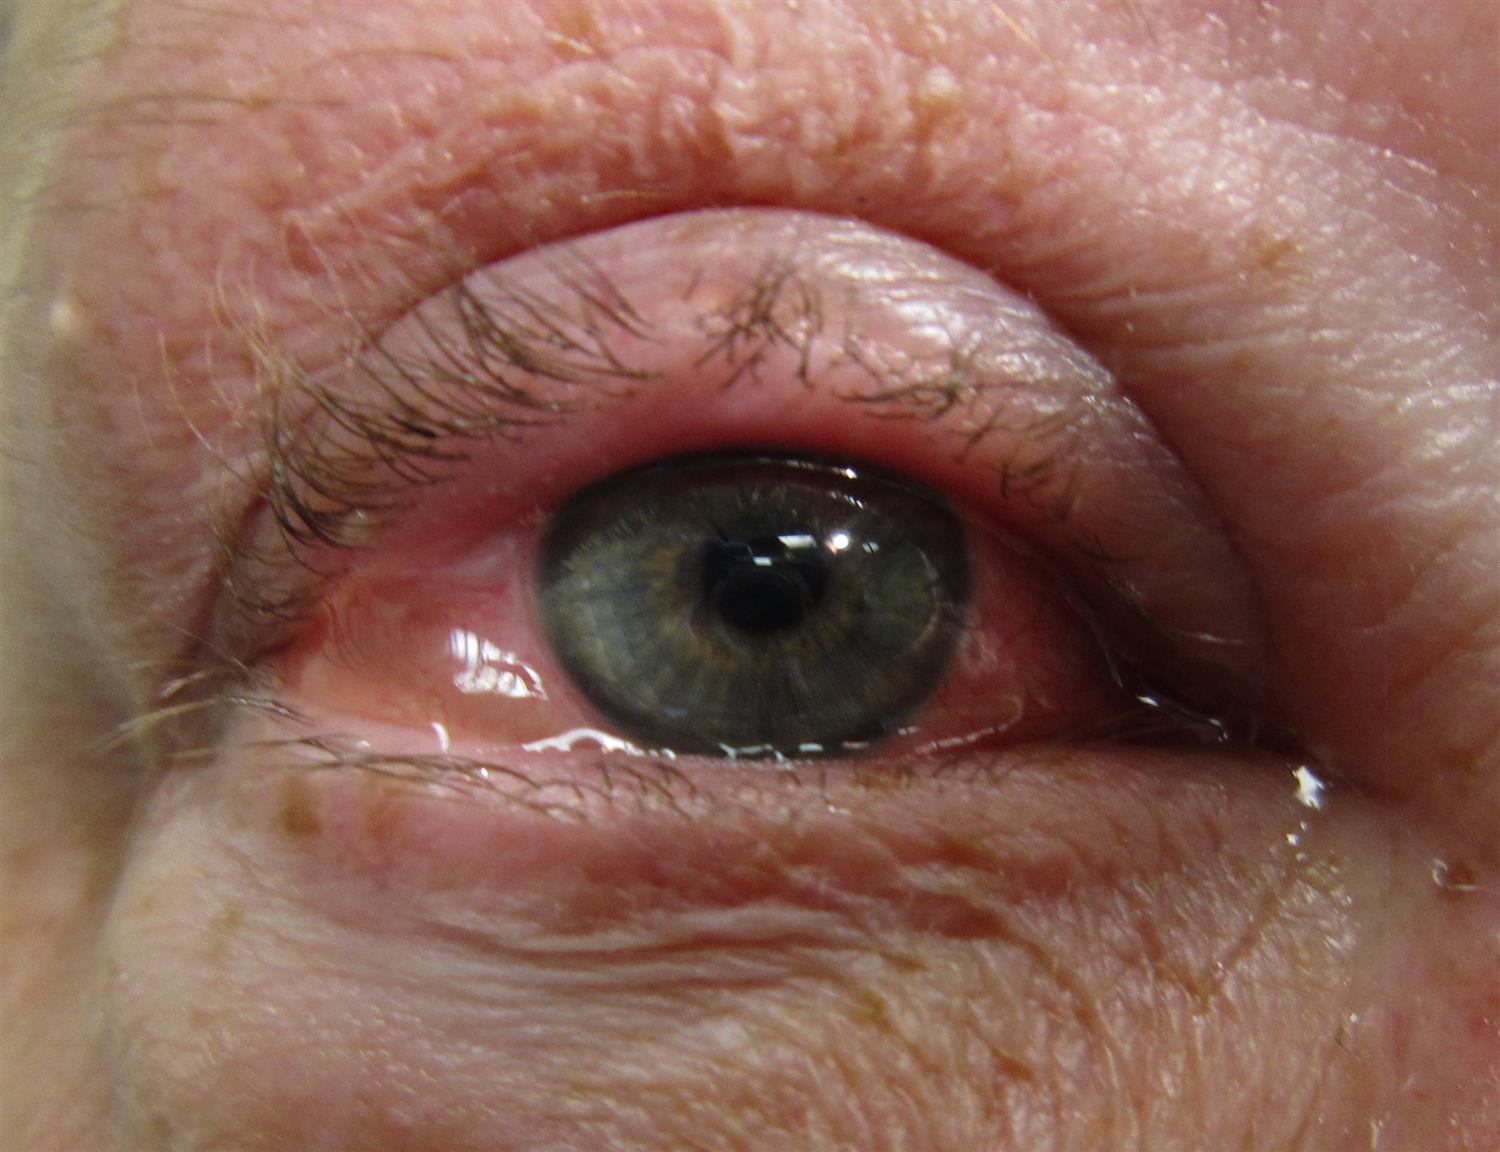 https://upload.medbullets.com/topic/120497/images/allergic_conjunctivitis.jpg